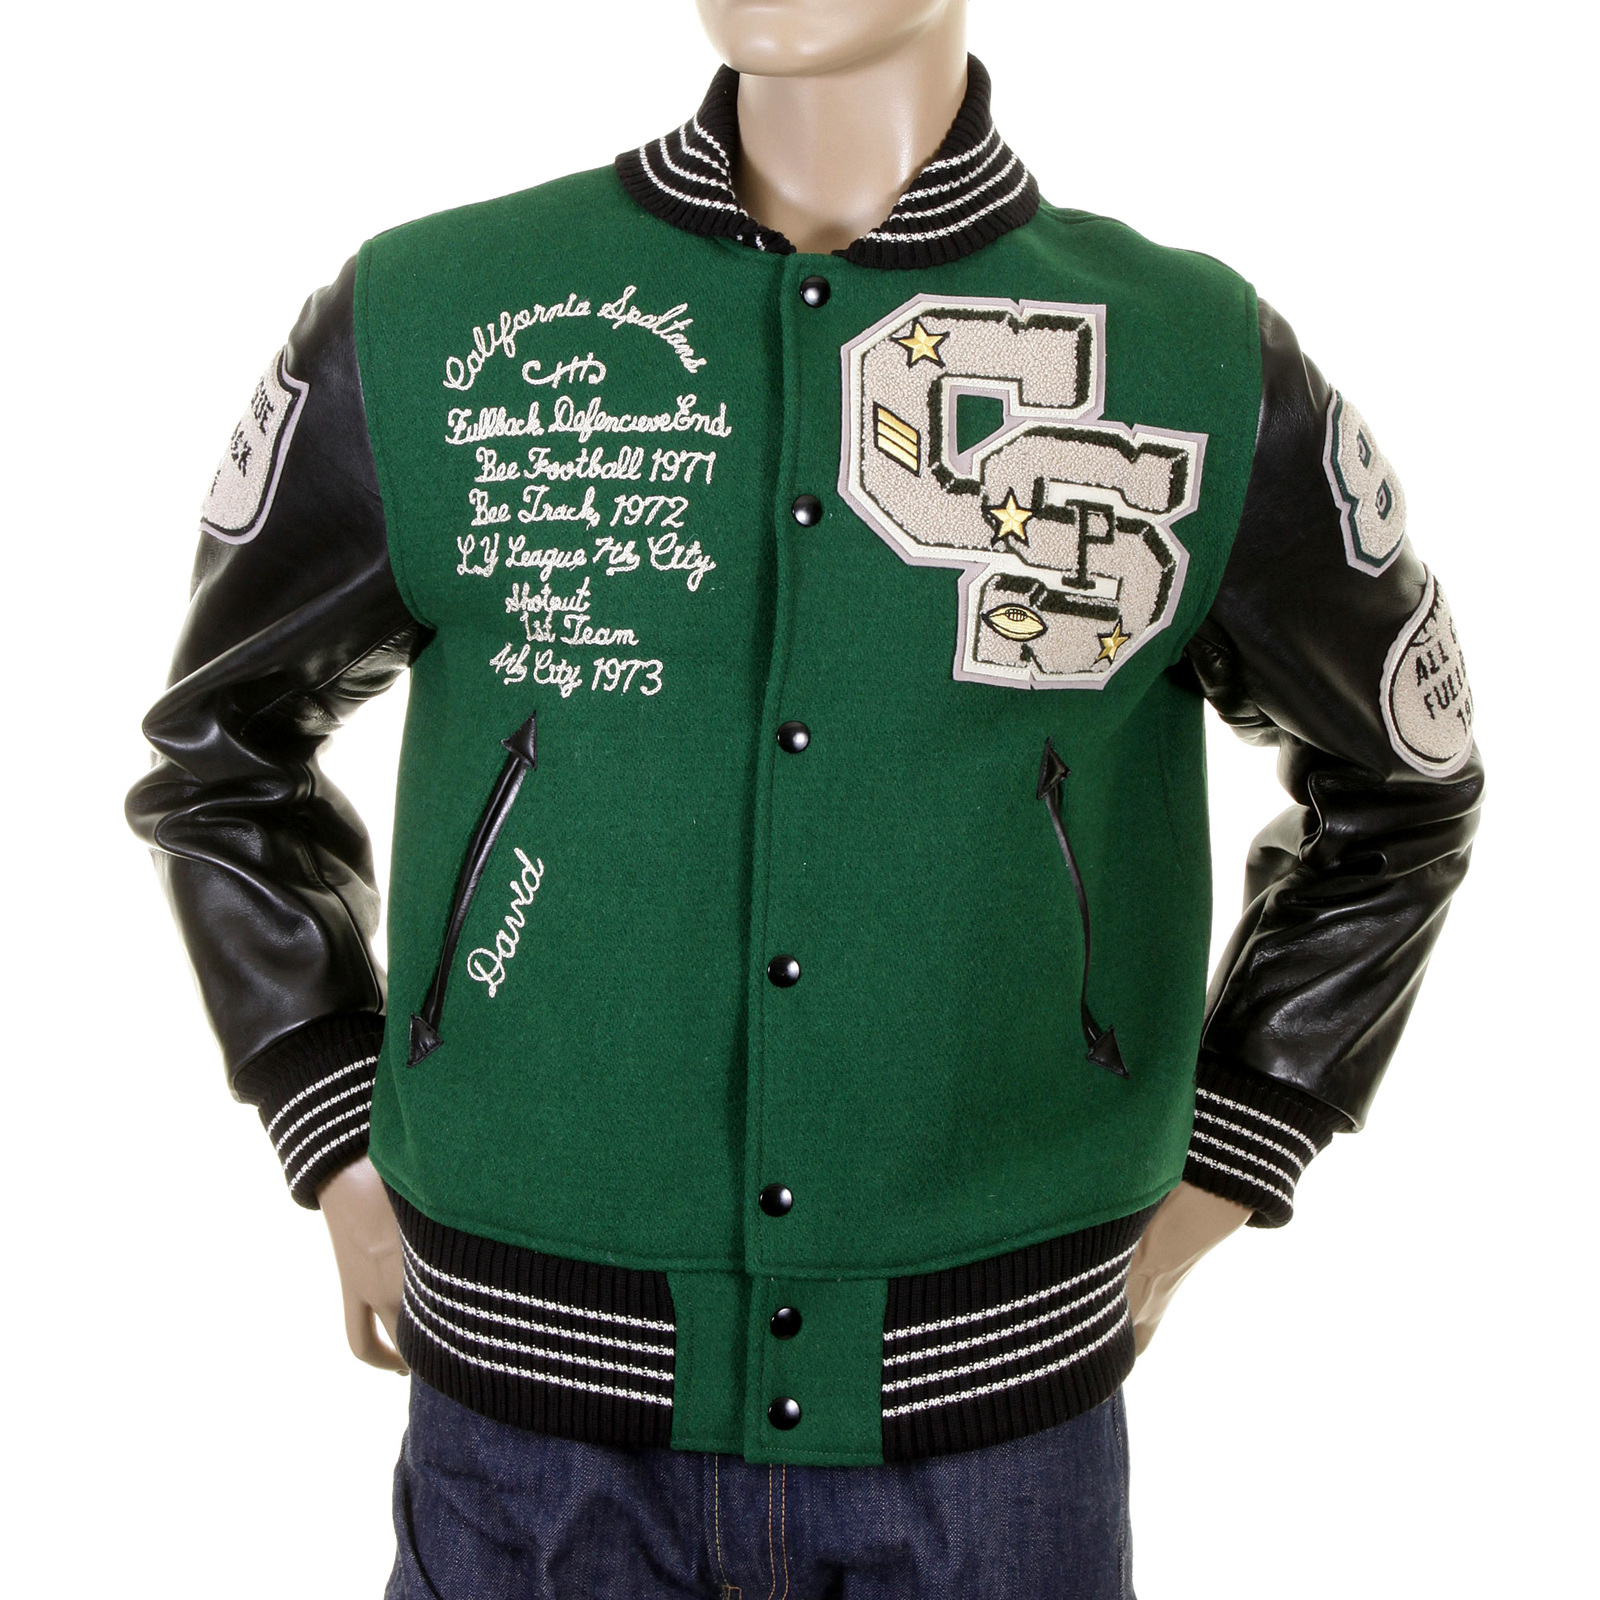 Mens Green Jacket with Leather sleeves by Sugarcane